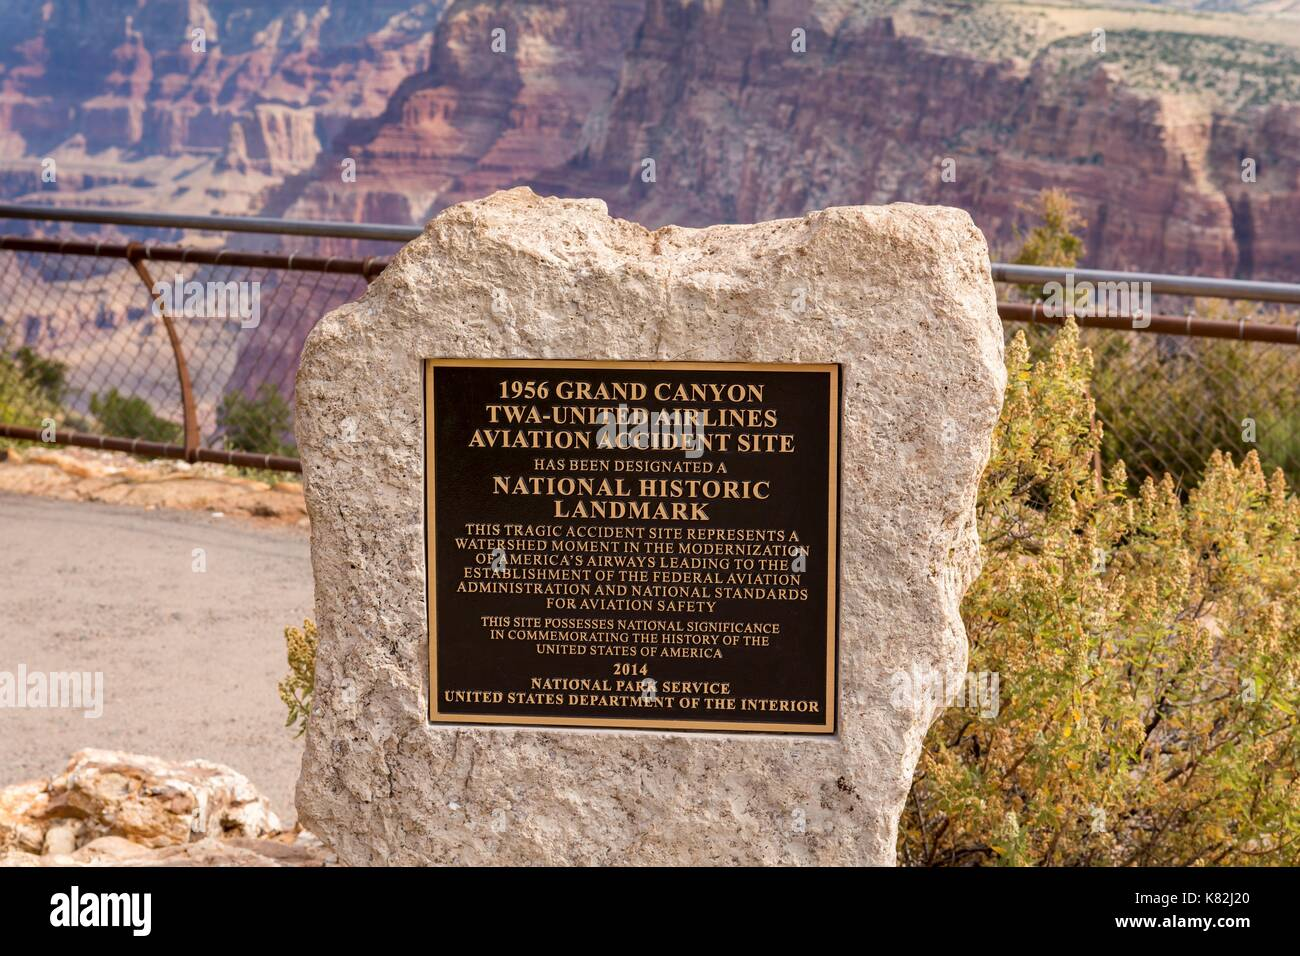 National Historic Landmark designating site of the 1956 mid-air crash of two commercial airliners over the Grand Canyon National Park in Arizona, USA. - Stock Image